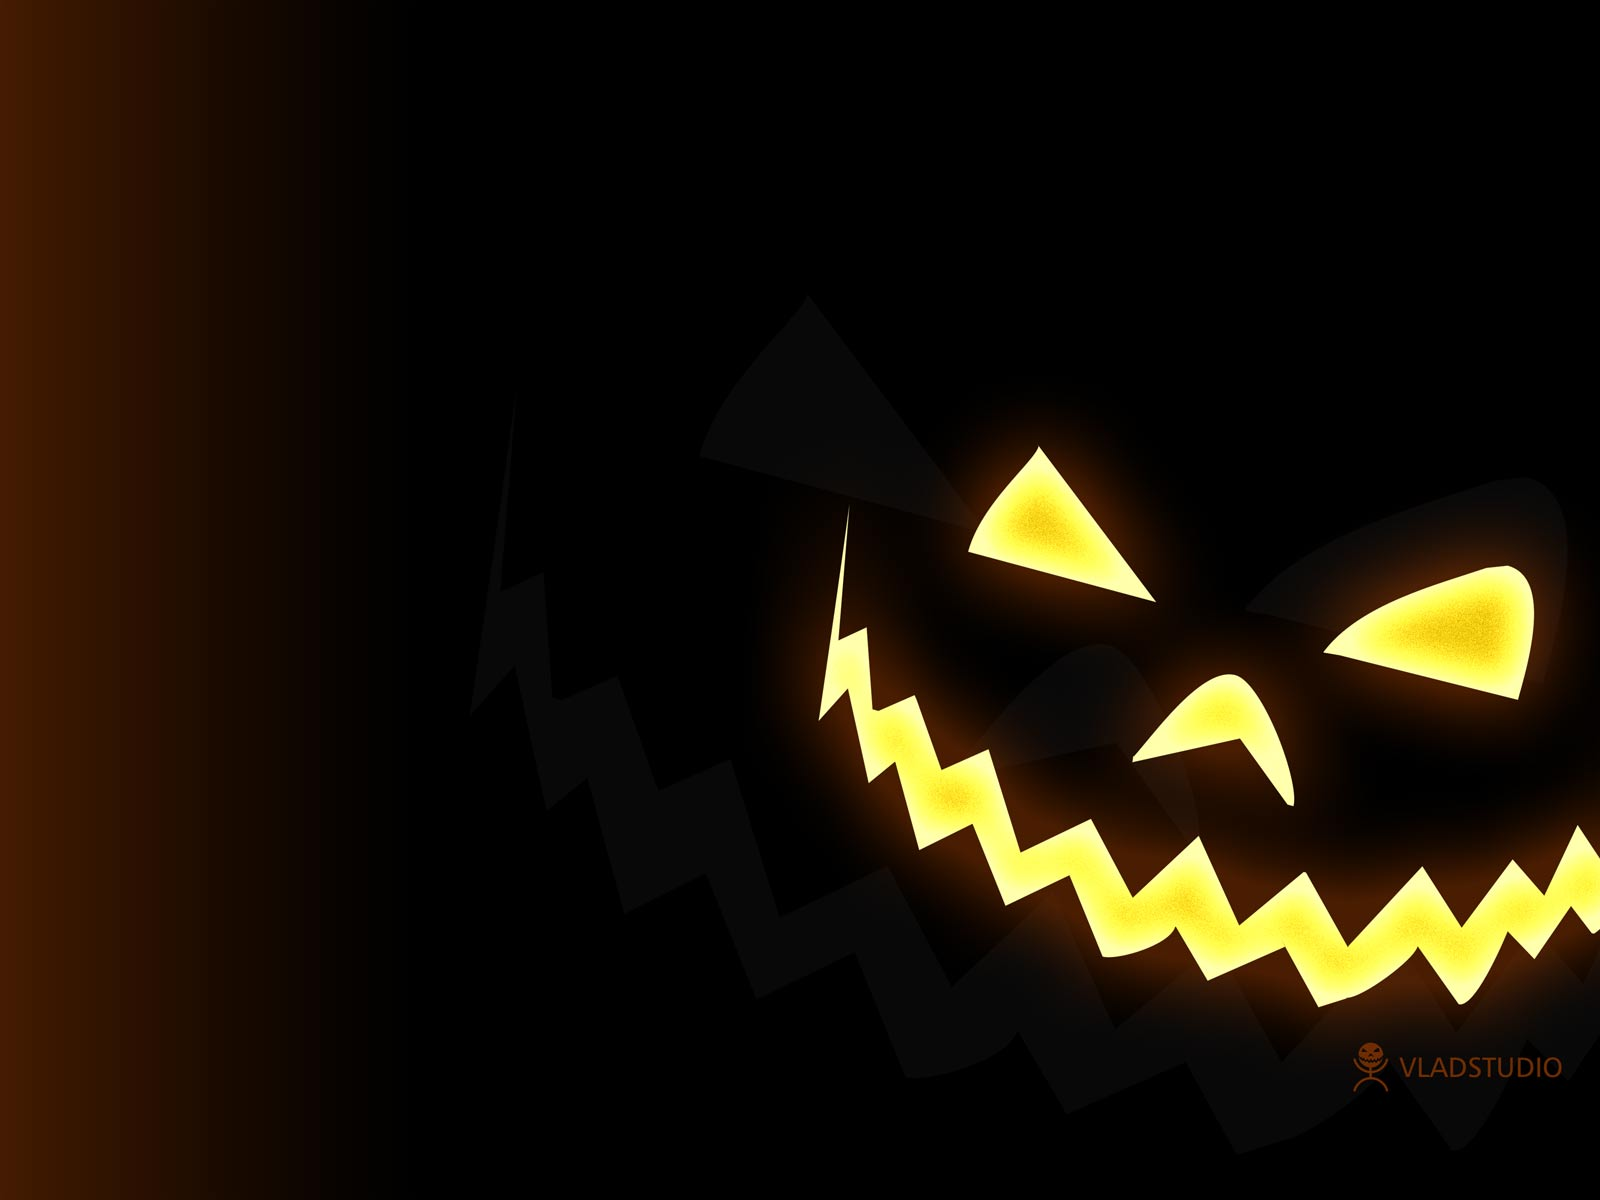 Free Desktop Wallpaper: Halloween Wallpaper Background